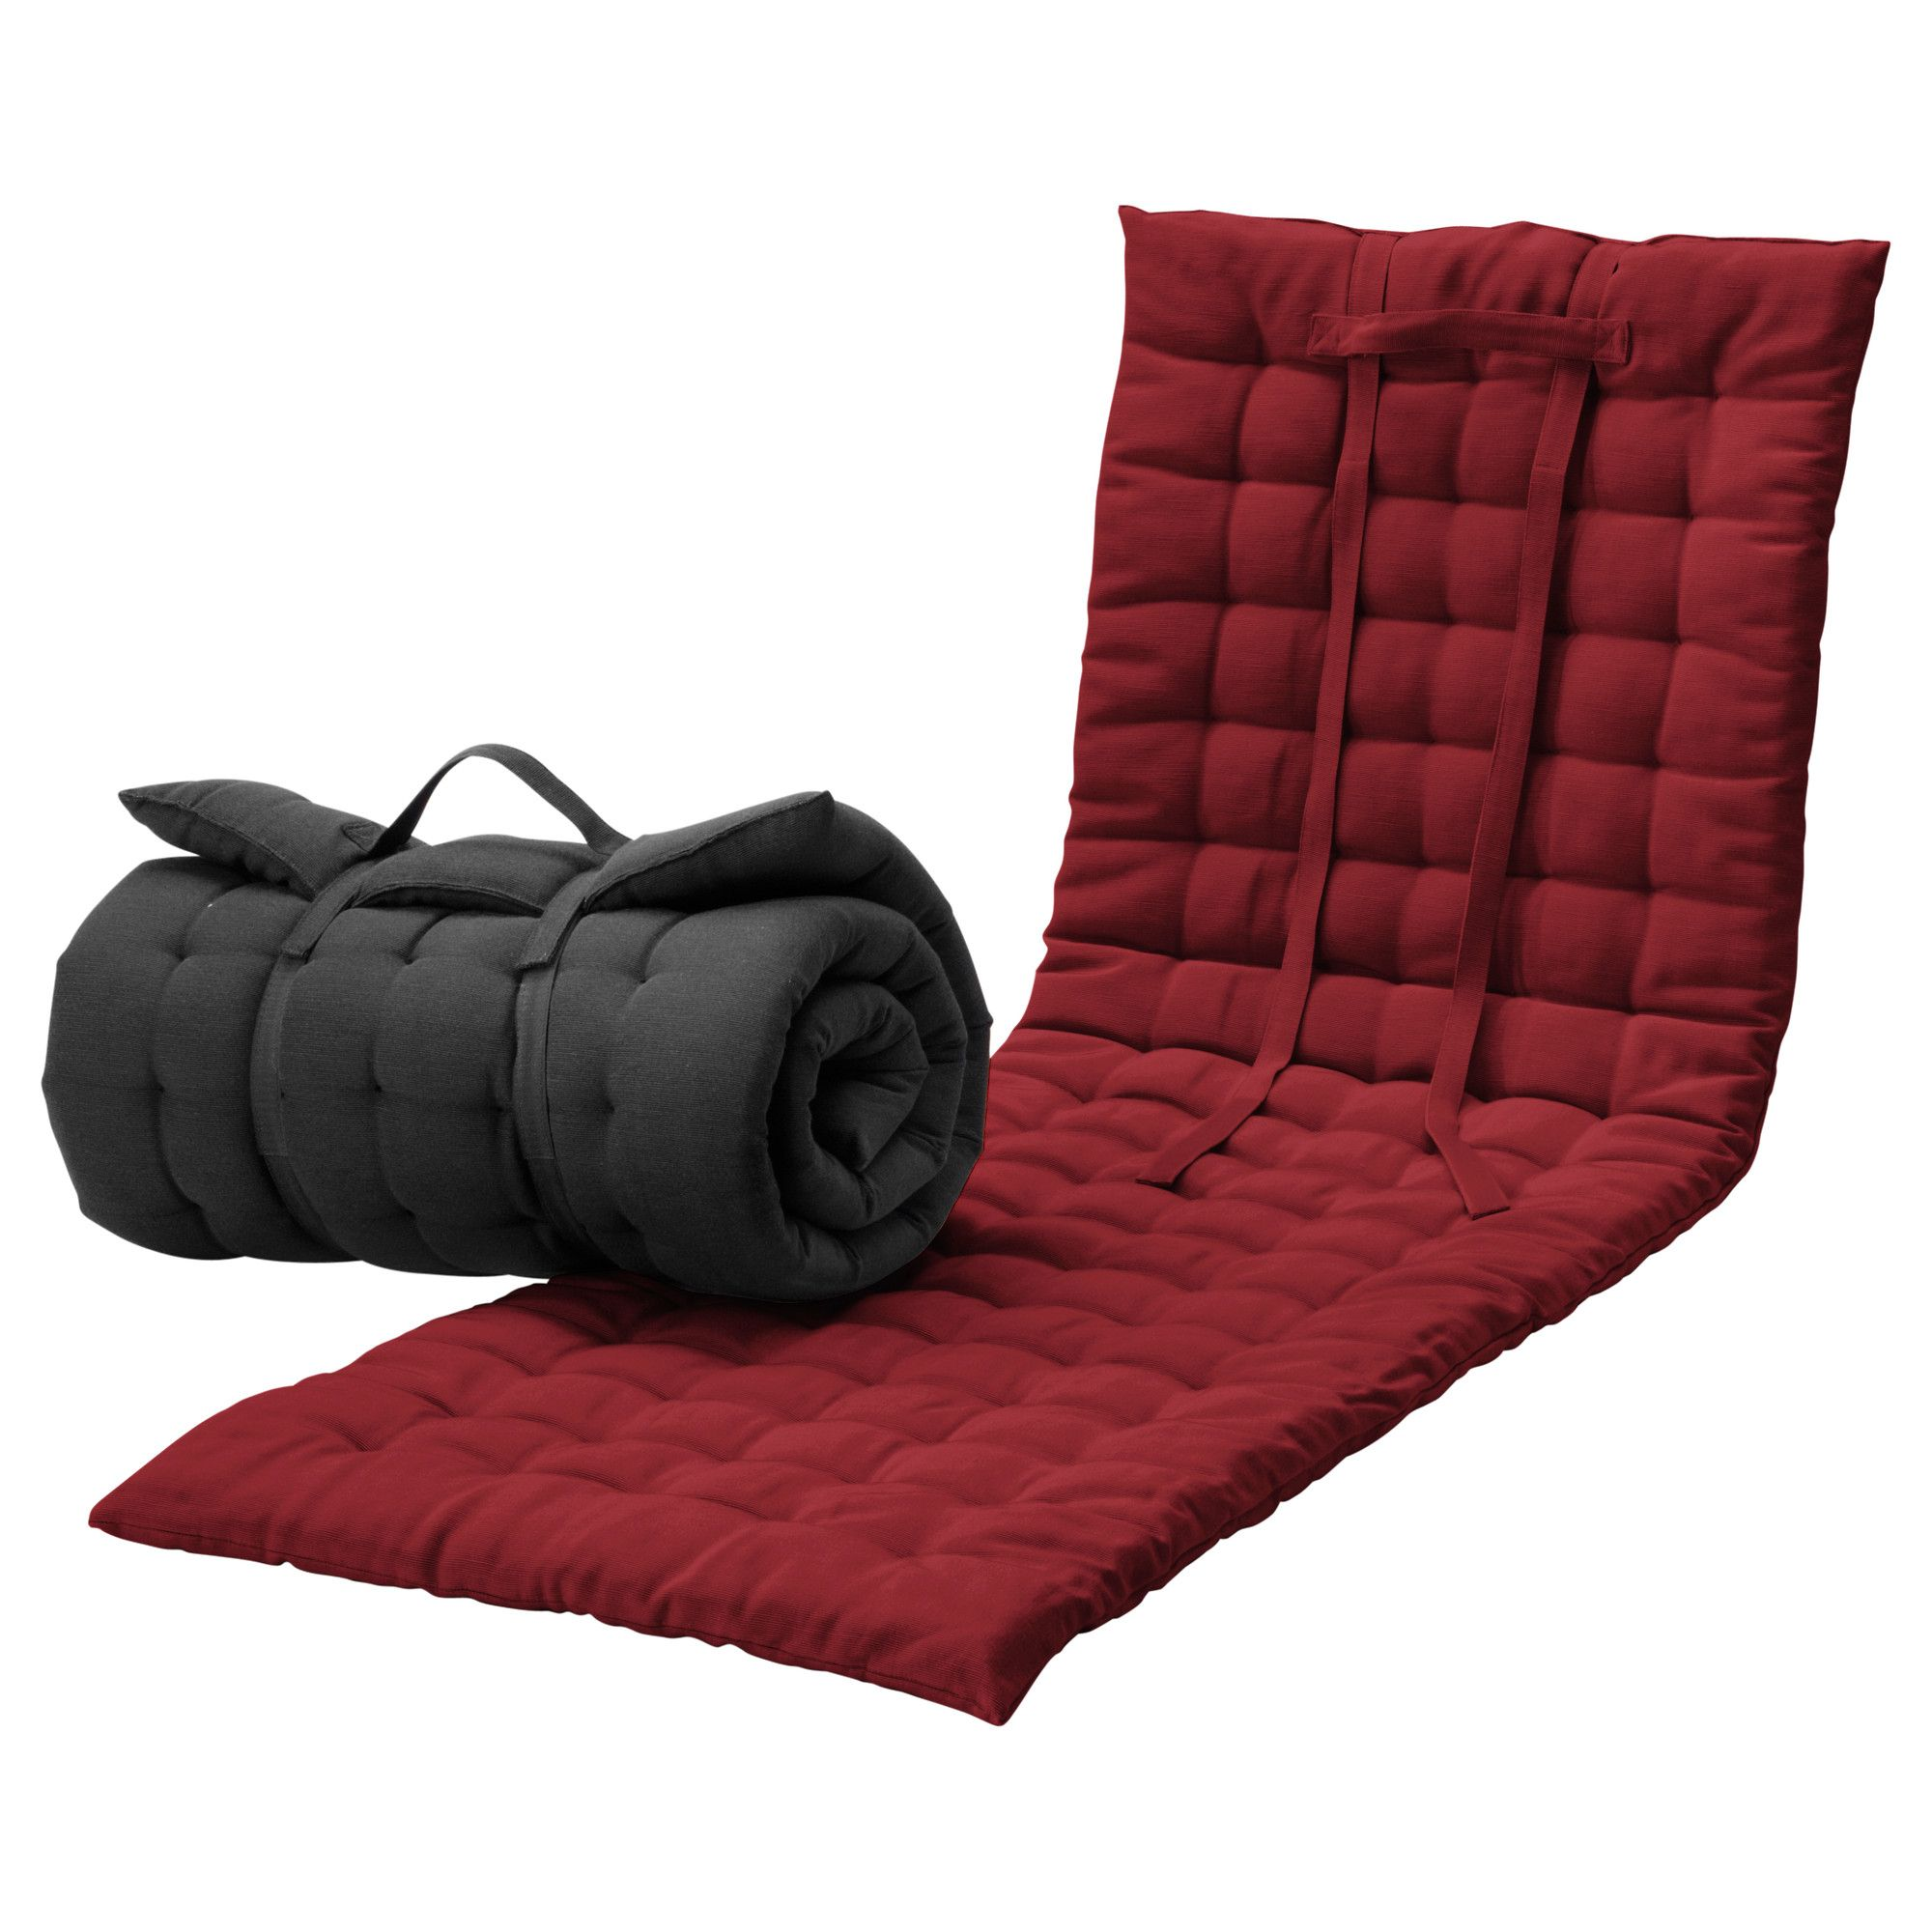 h ll matelas fin bain de soleil noir rouge ikea. Black Bedroom Furniture Sets. Home Design Ideas